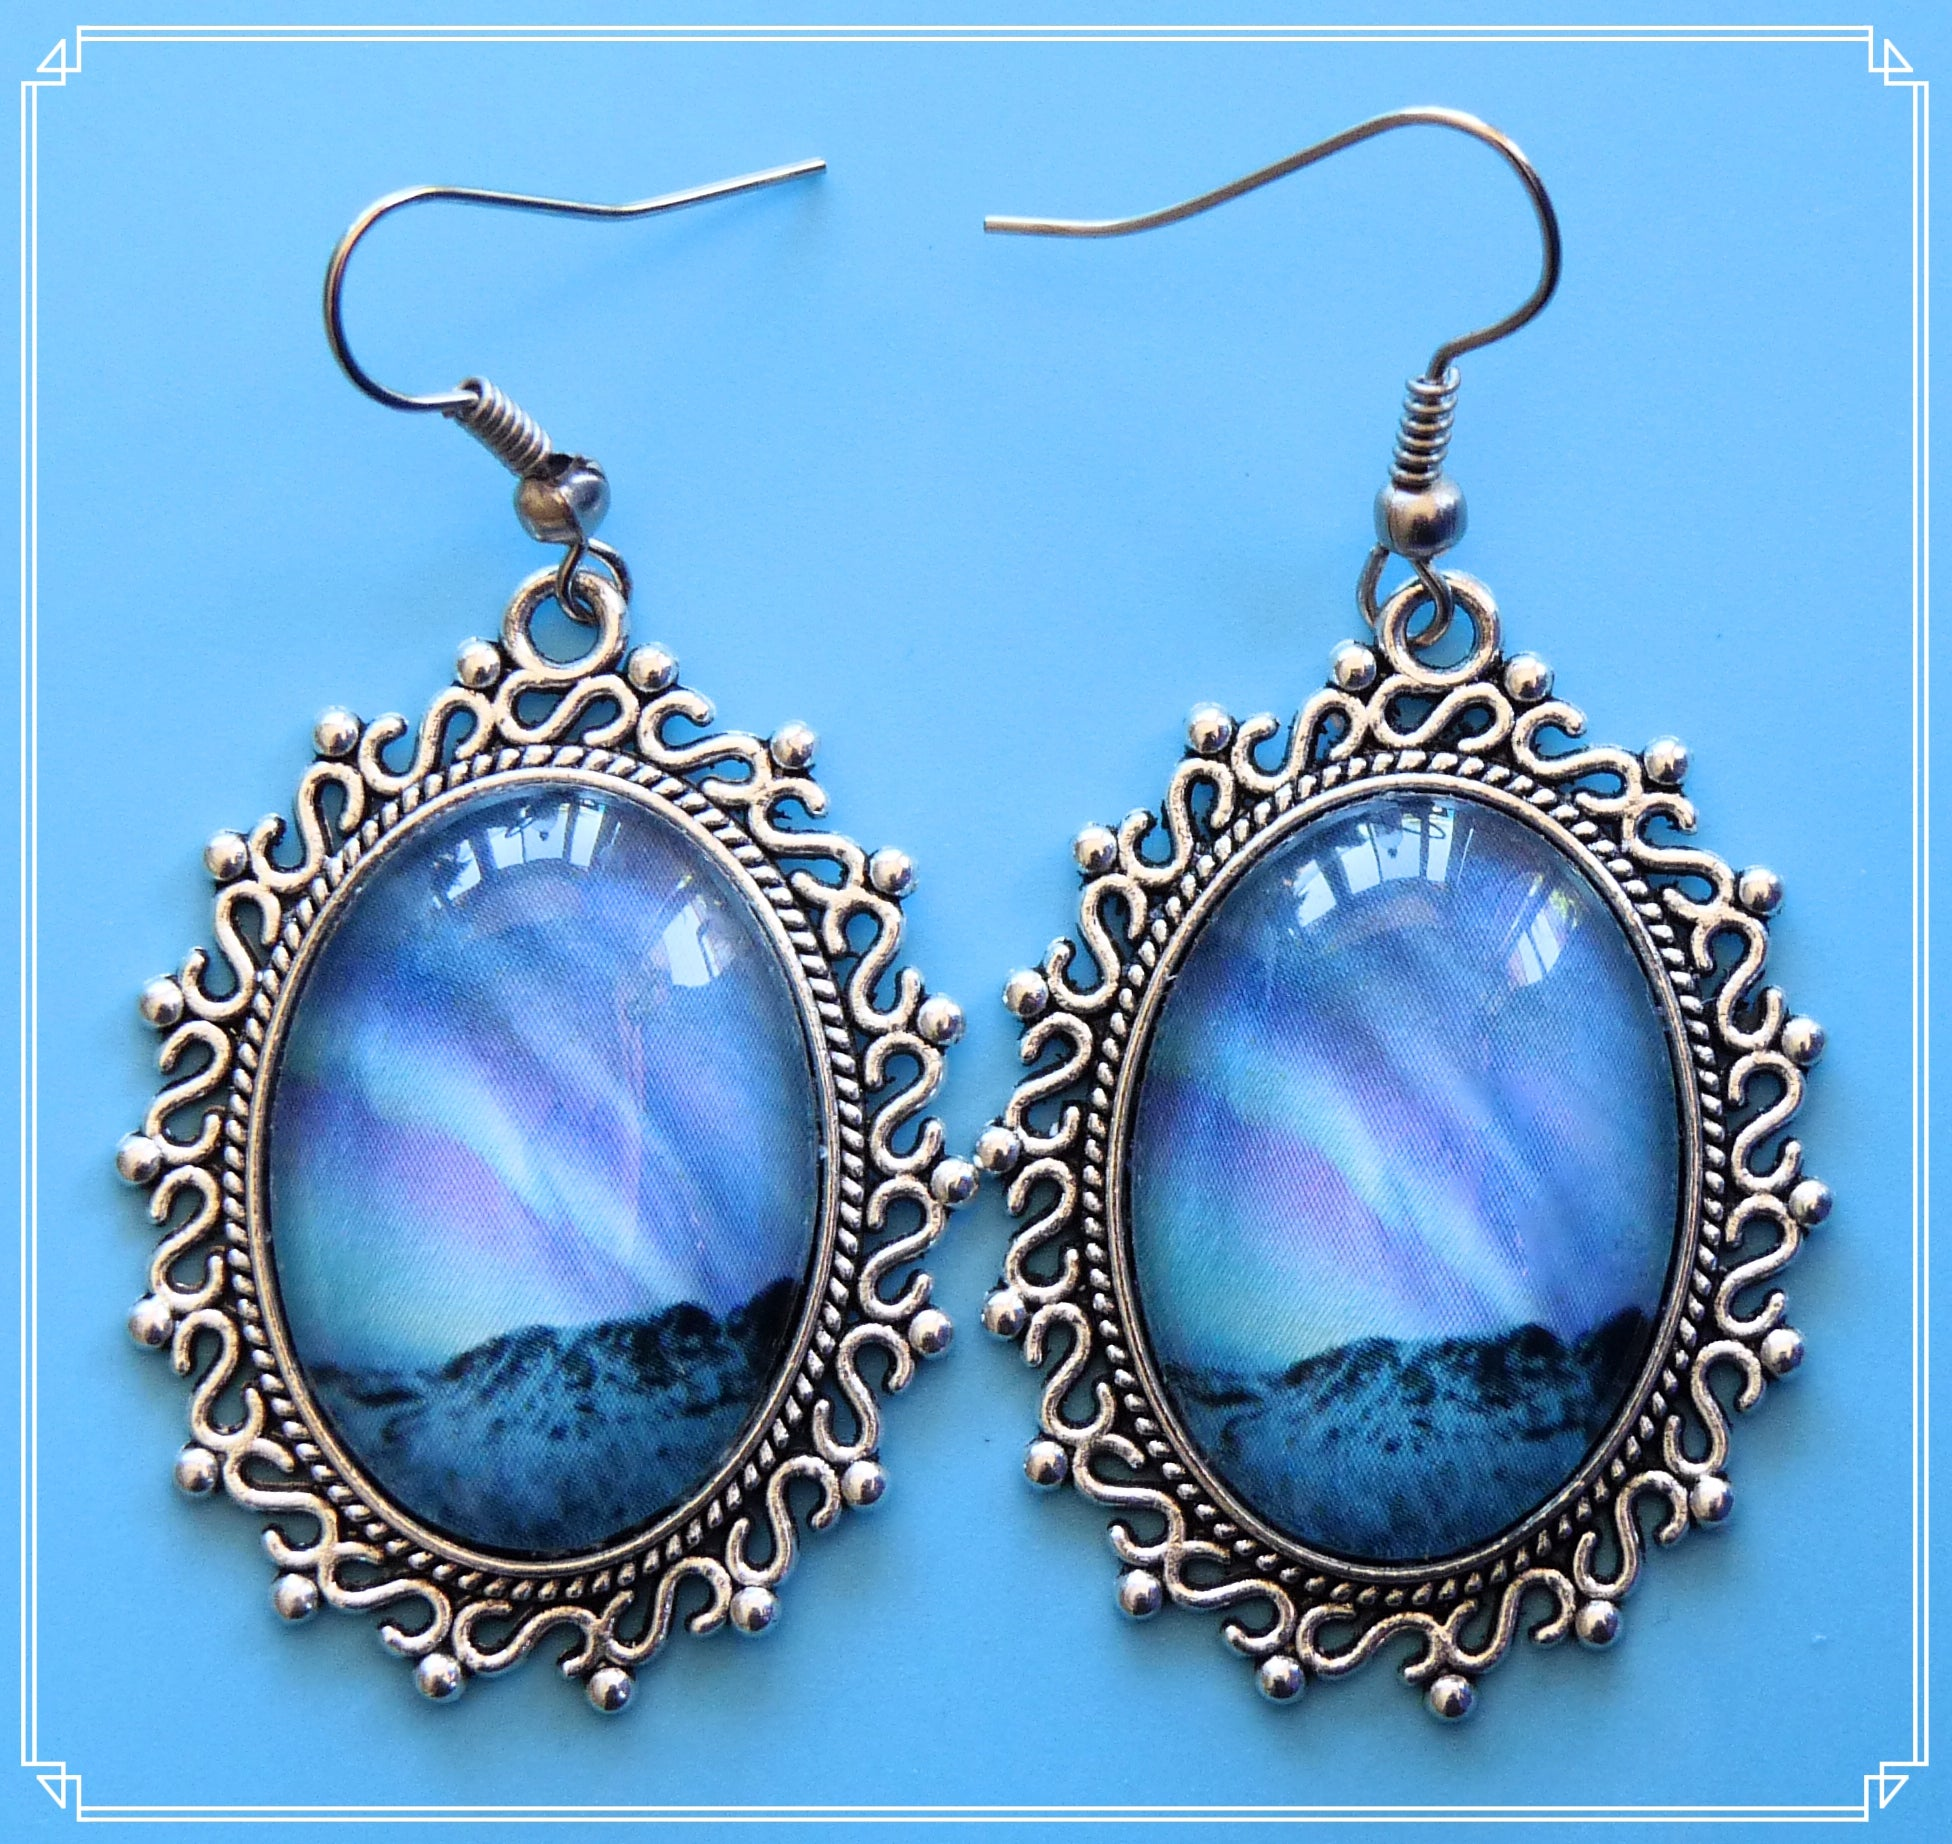 Northern Lights - Whistle or Clap? earrings